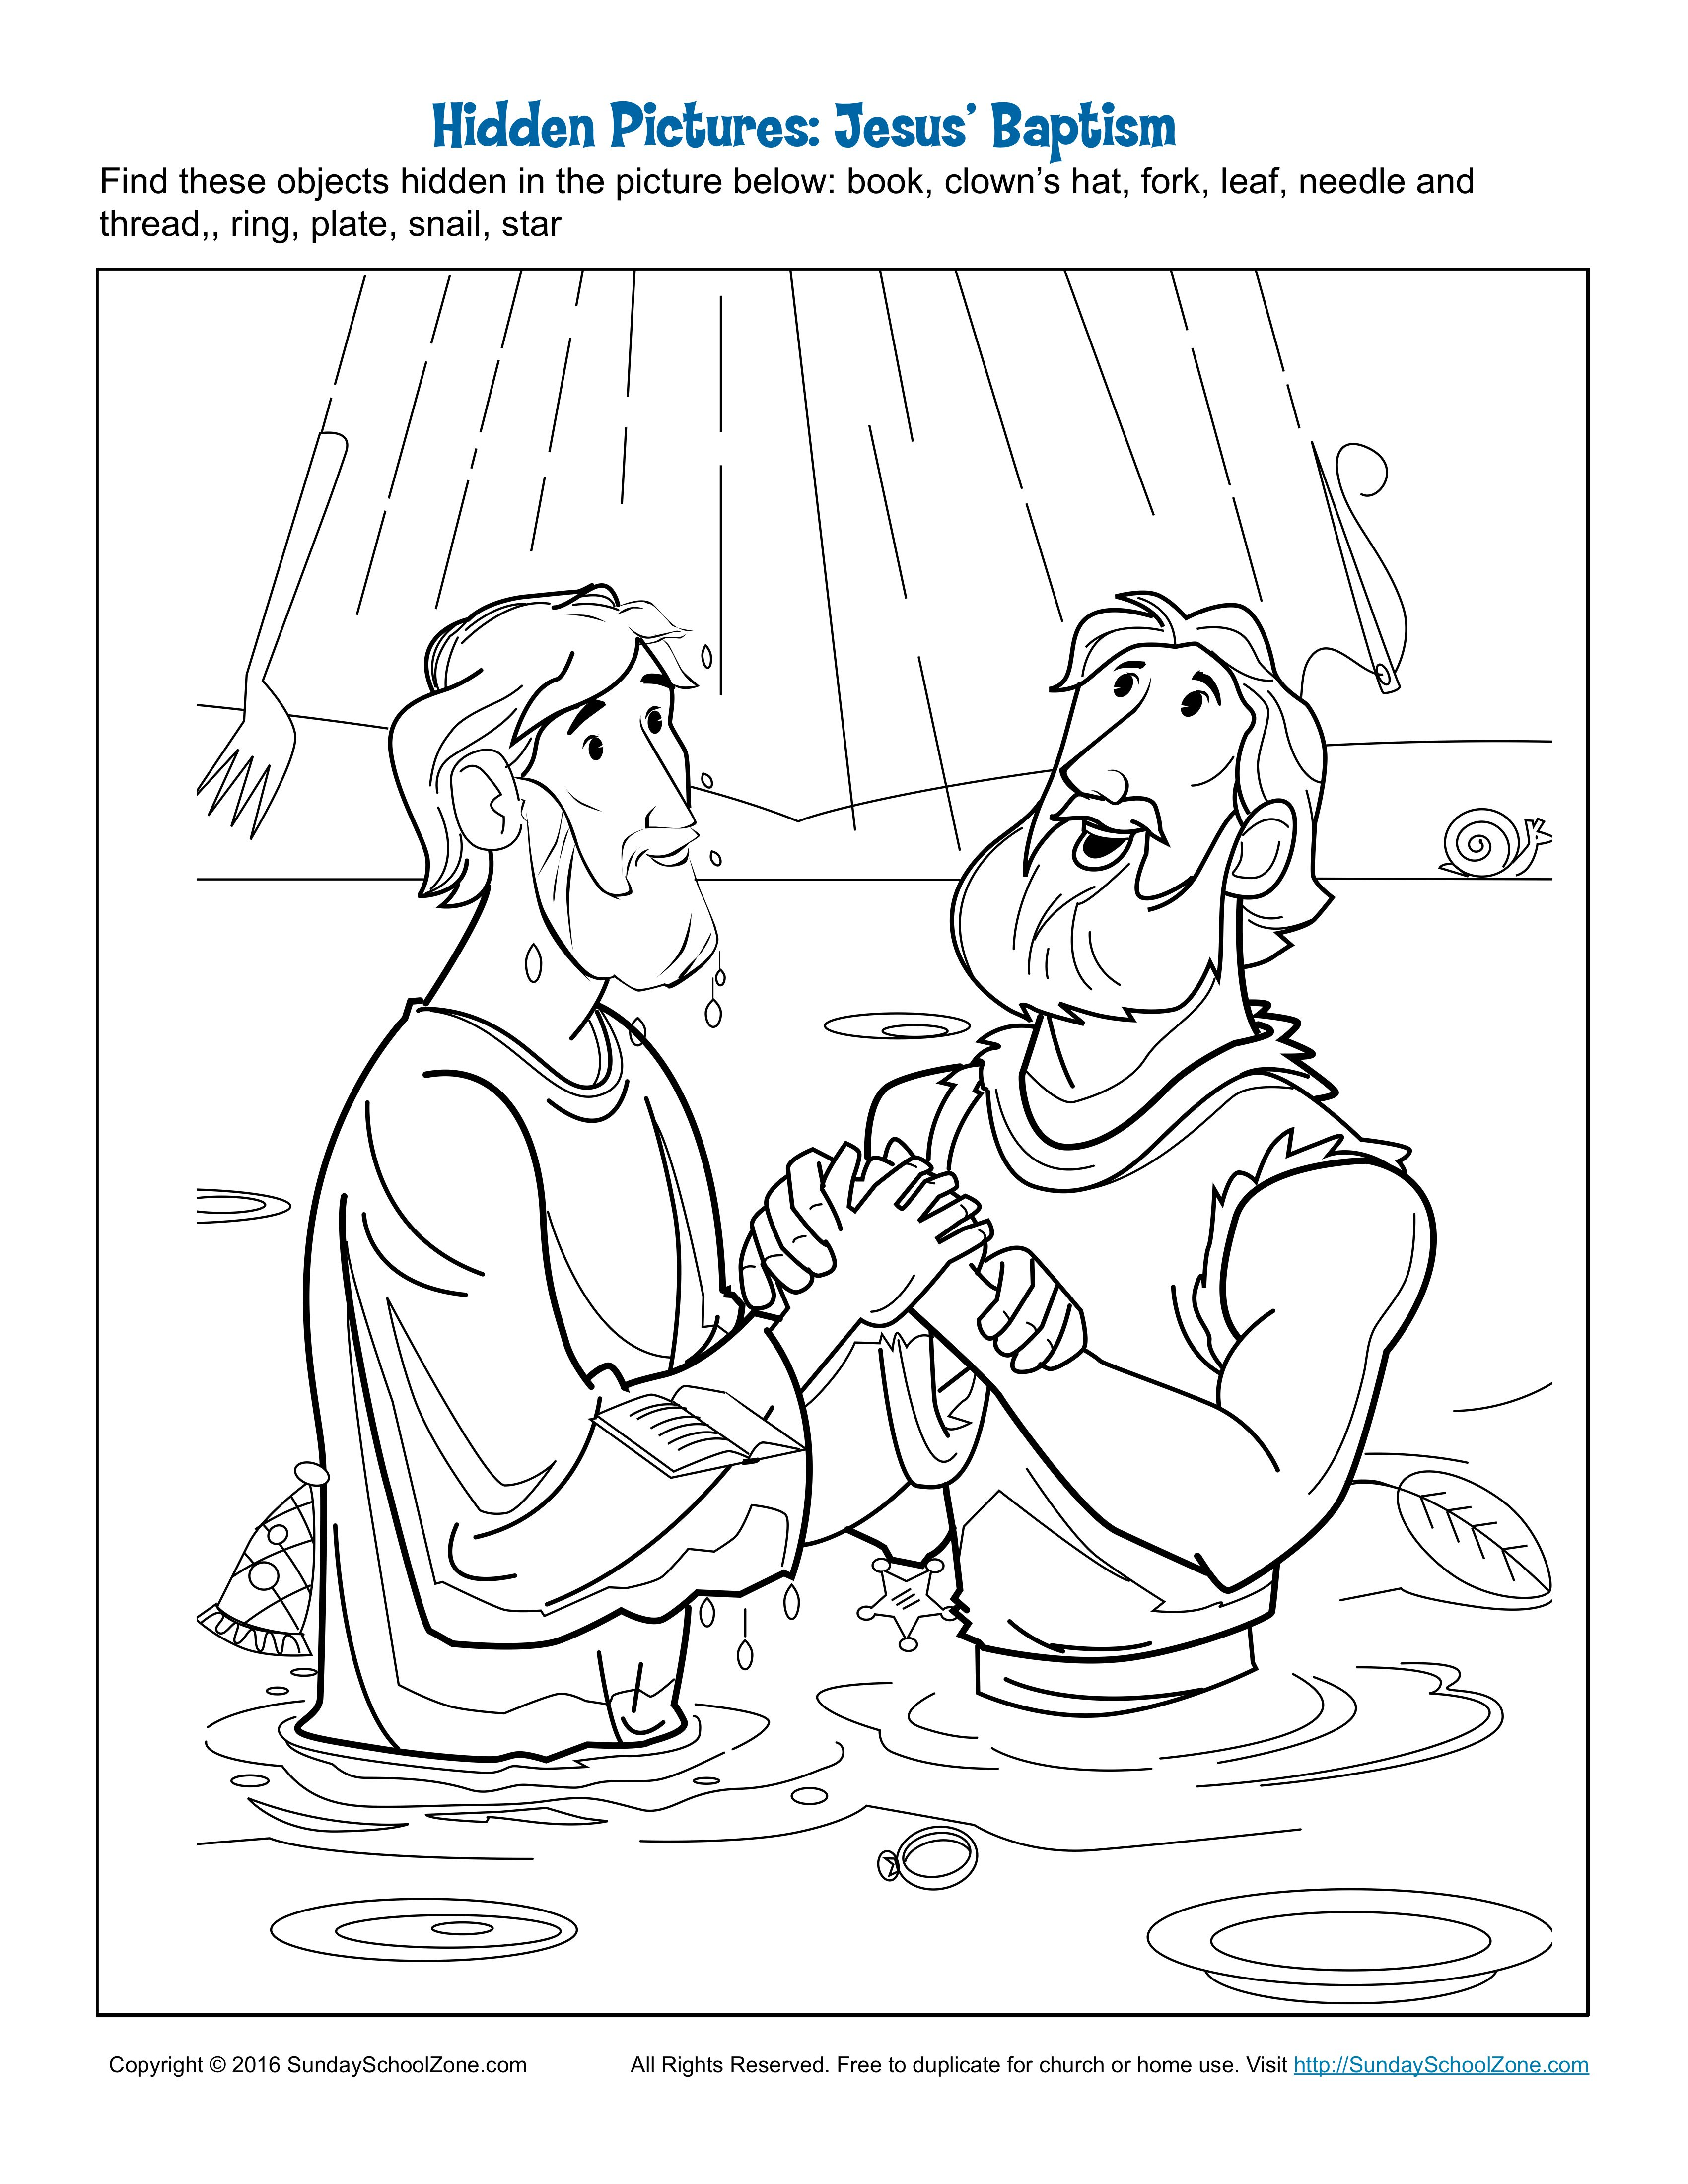 Jesus Baptism Hidden Pictures Children S Bible Activities Sunday School Activities For Kids Childrens Bible Activities Sunday School Coloring Pages Bible Activities